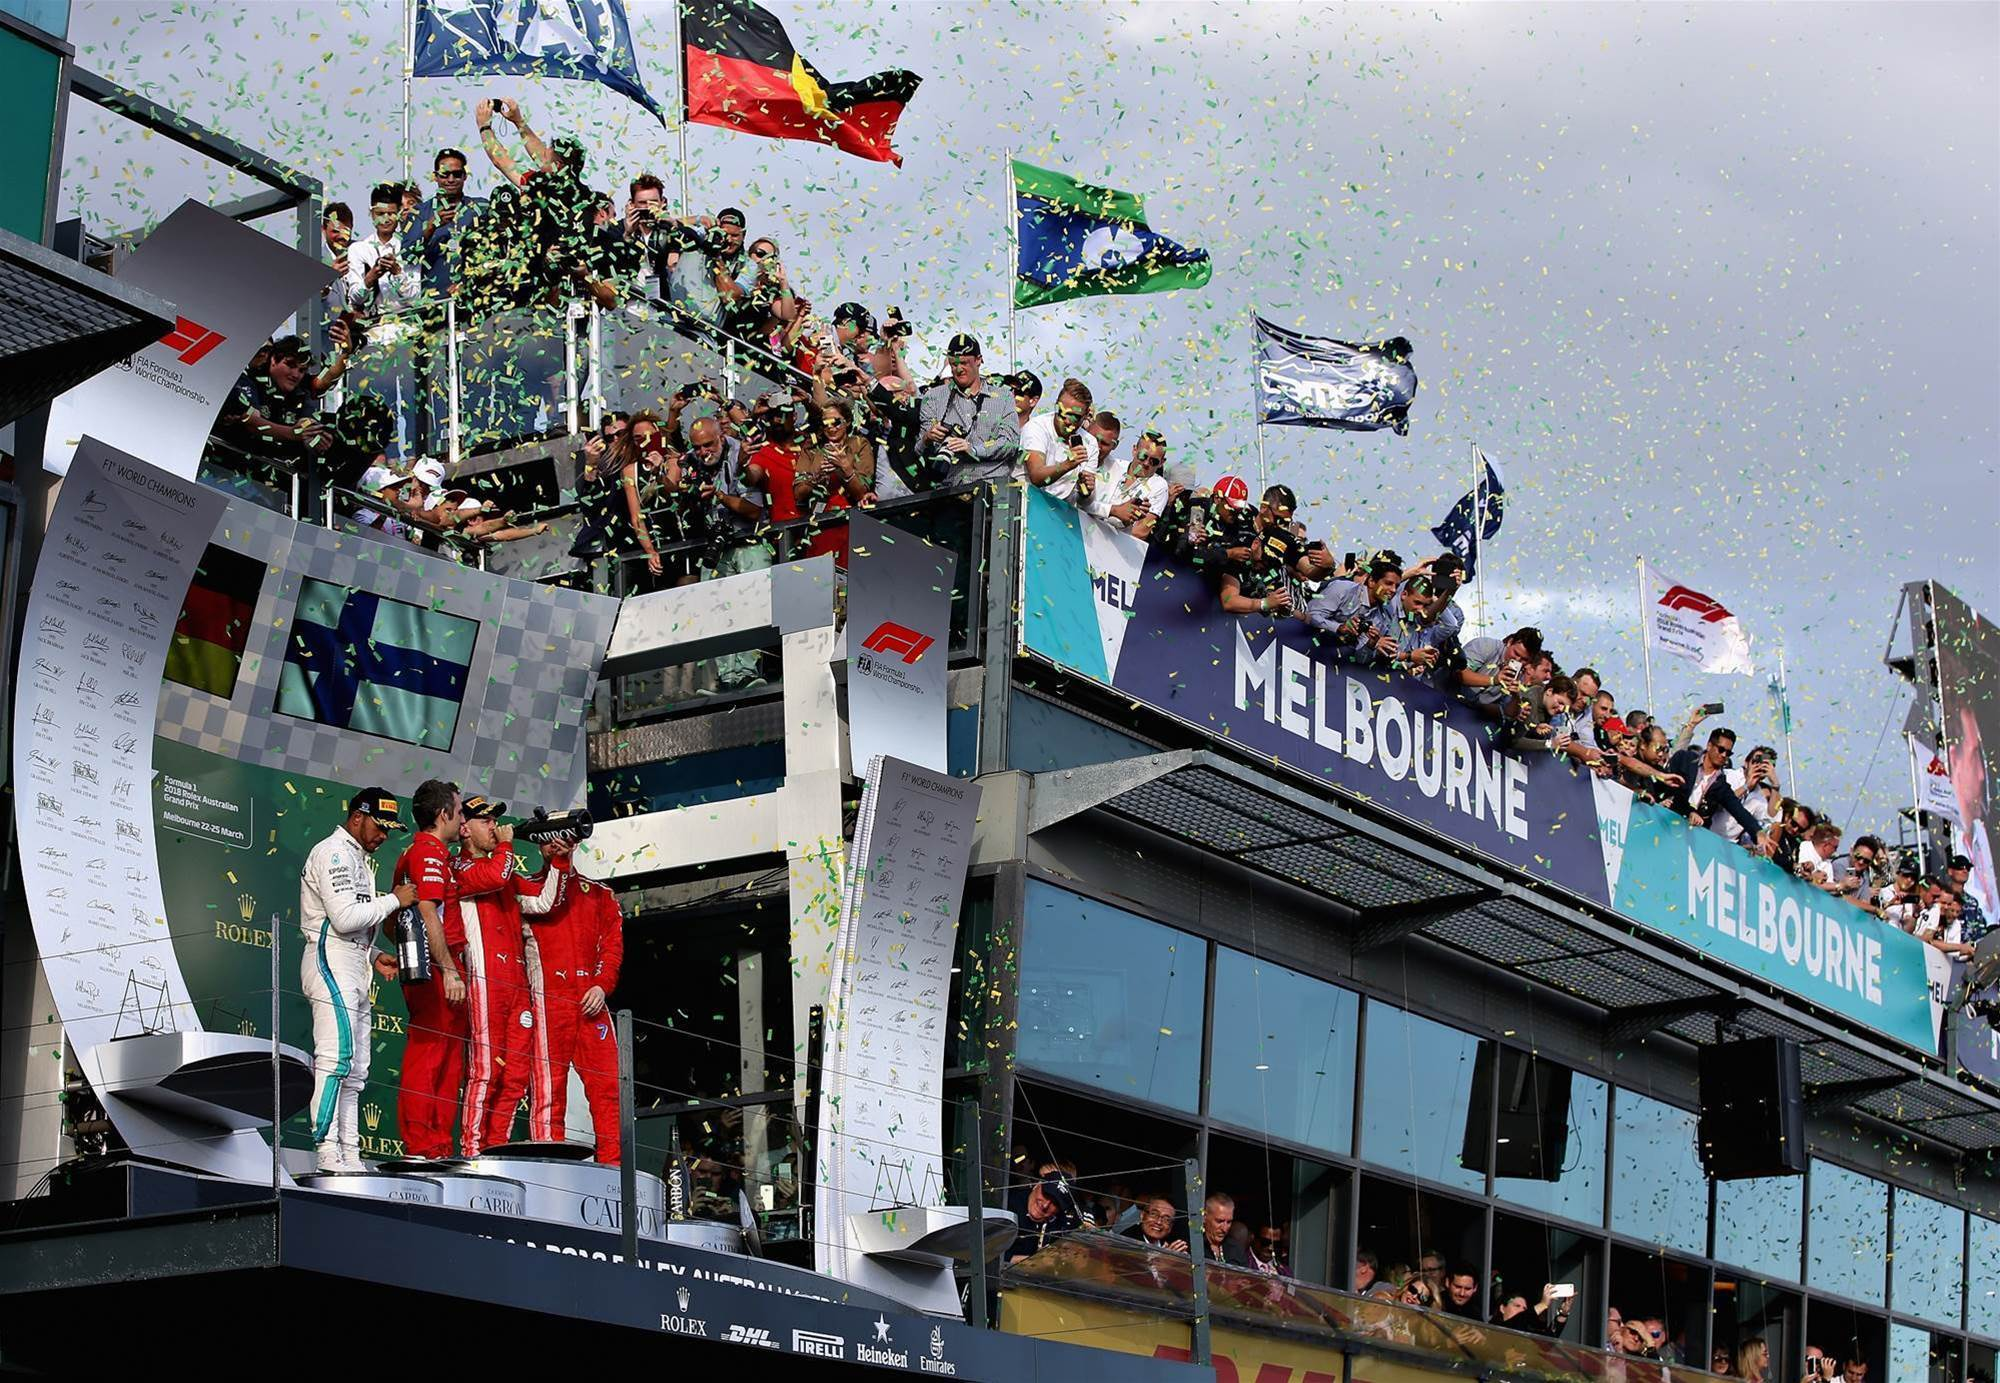 Melbourne to host F1 pre-season launch